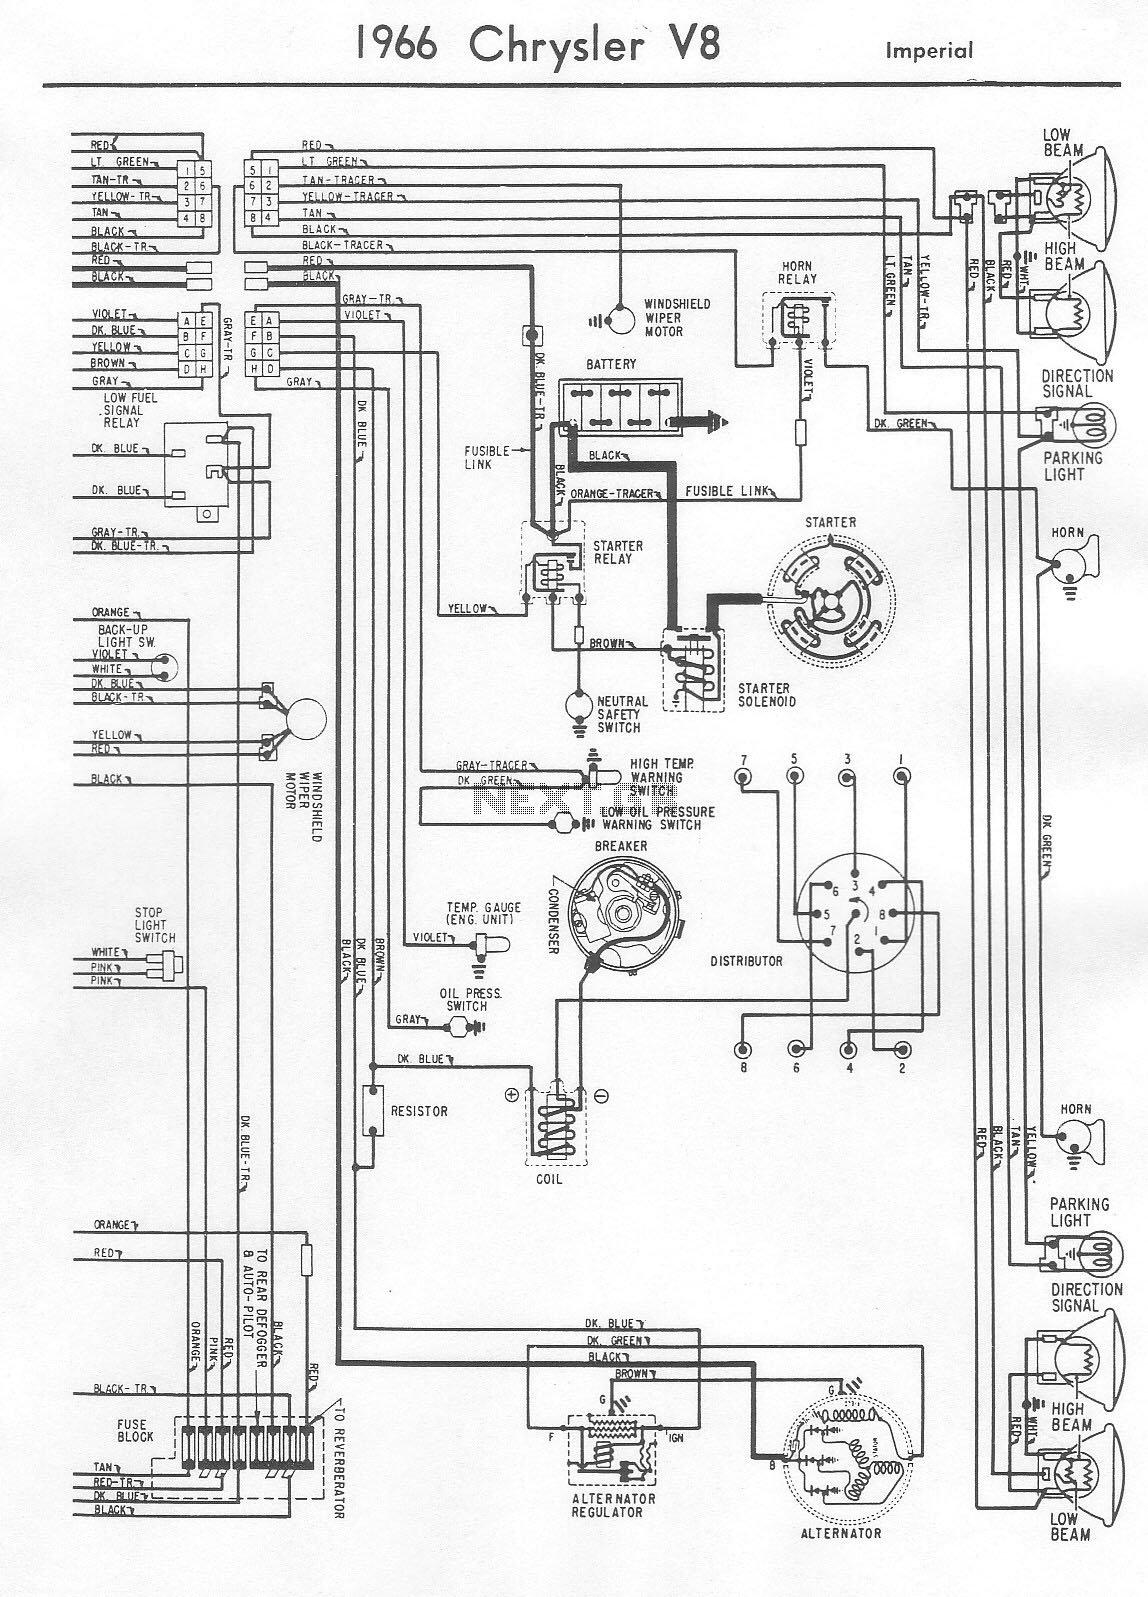 Imperial Wiring Diagrams Manual Guide Diagram Chrysler Boat 90 Get Free Image About 1960